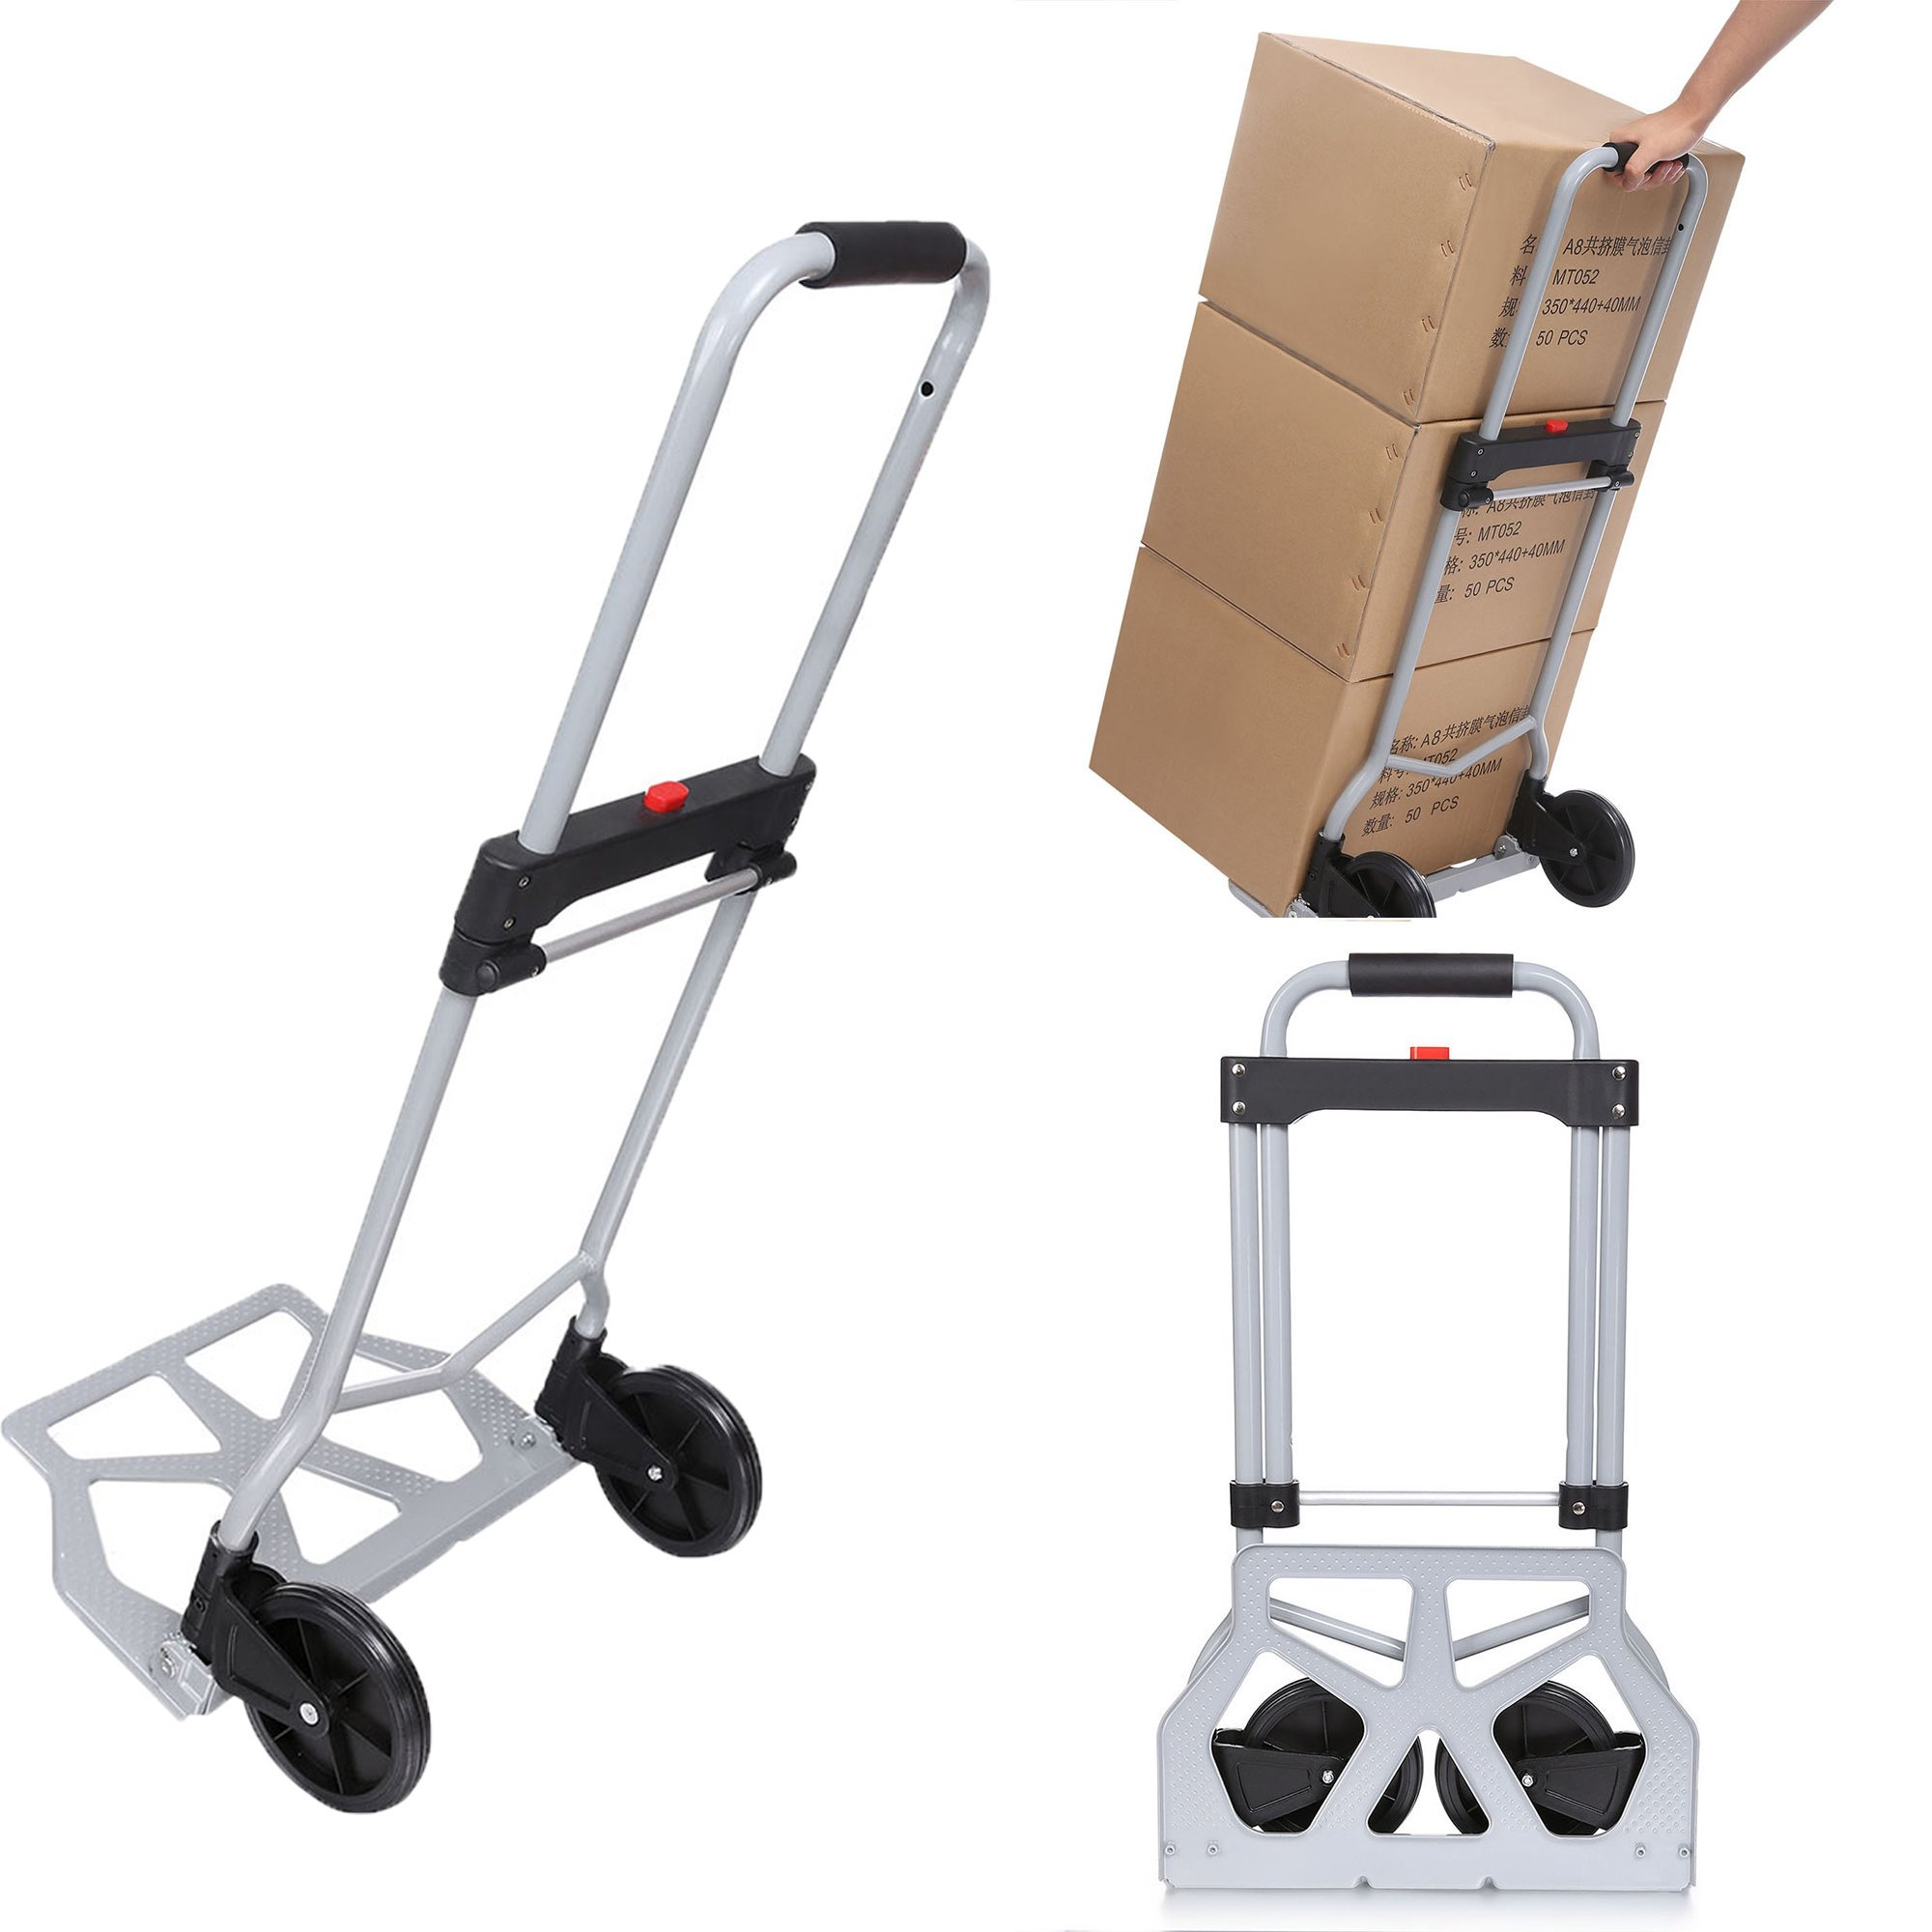 Heavy Duty Hand Truck & Dolly, 220 lb. Capacity Aluminum Portable Folding Luggage Utility Cart with2 Wheels for Shopping/Industrial/ Travel